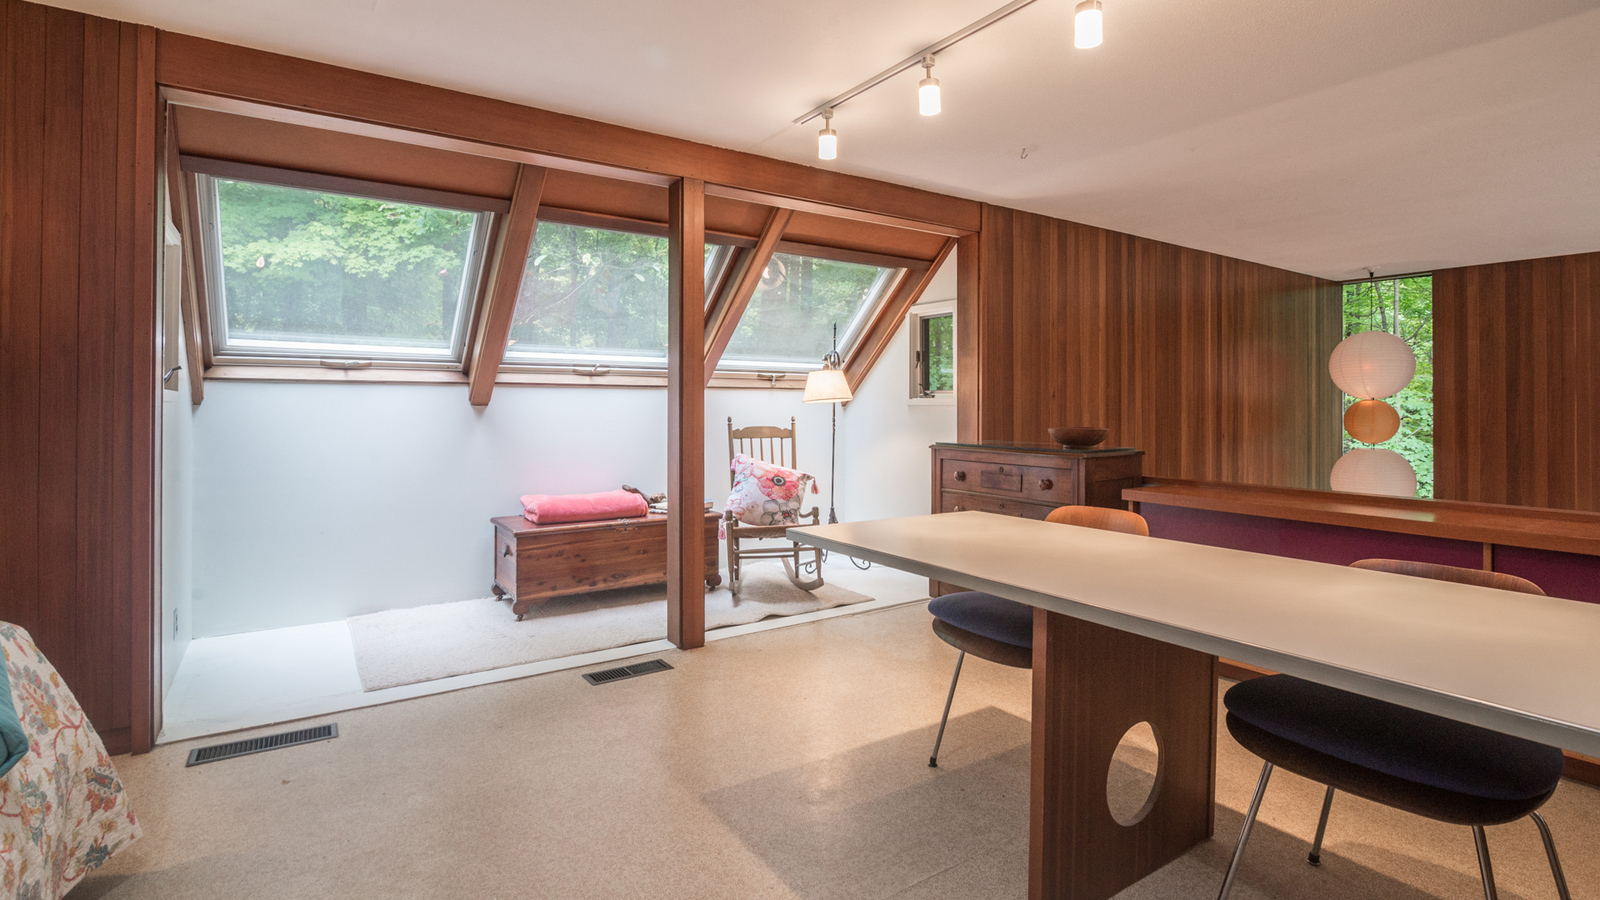 Bedrooms at The Tivadar and Dorothy Balogh House have original custom built midcentury cabinetry